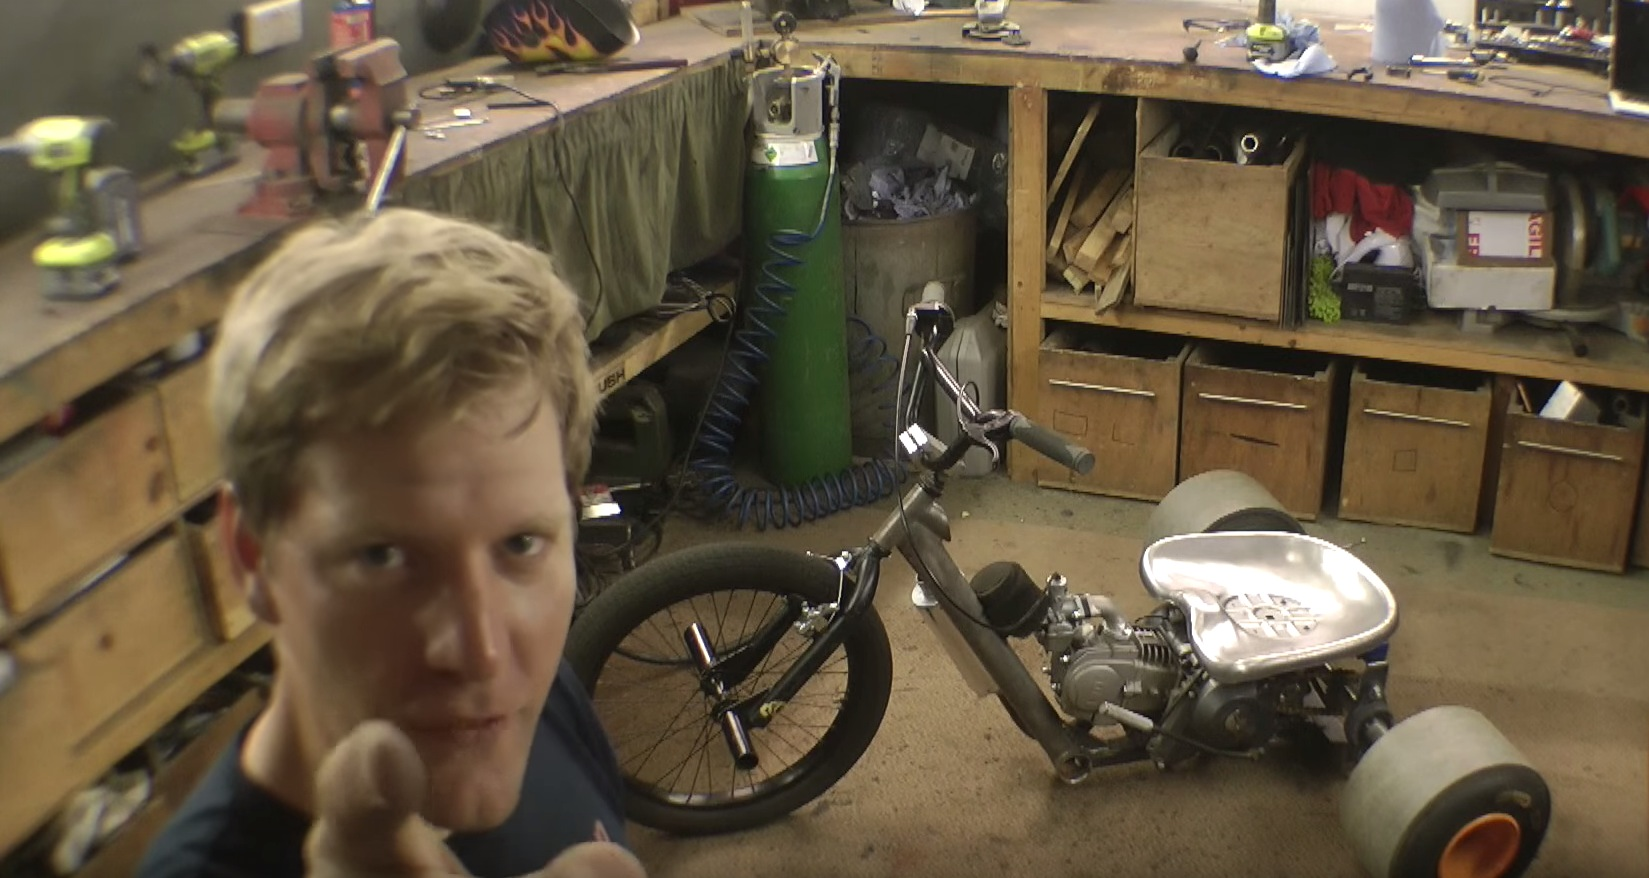 Building a Motorized Drift Trike in Your Garage Looks like a